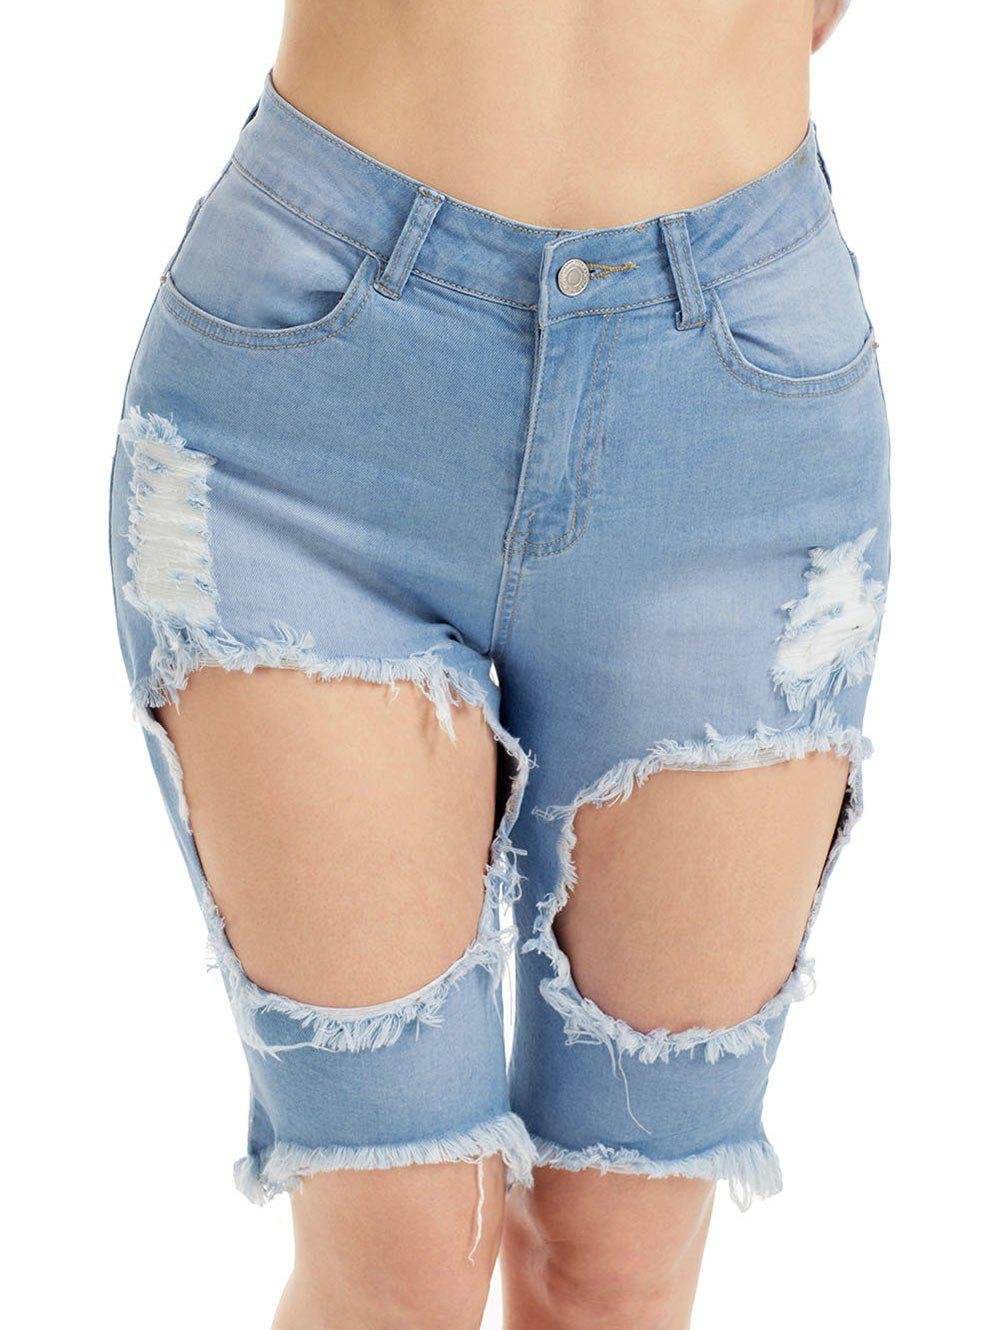 Denim High Waist Ripped Bermuda Shorts - BLUE XL